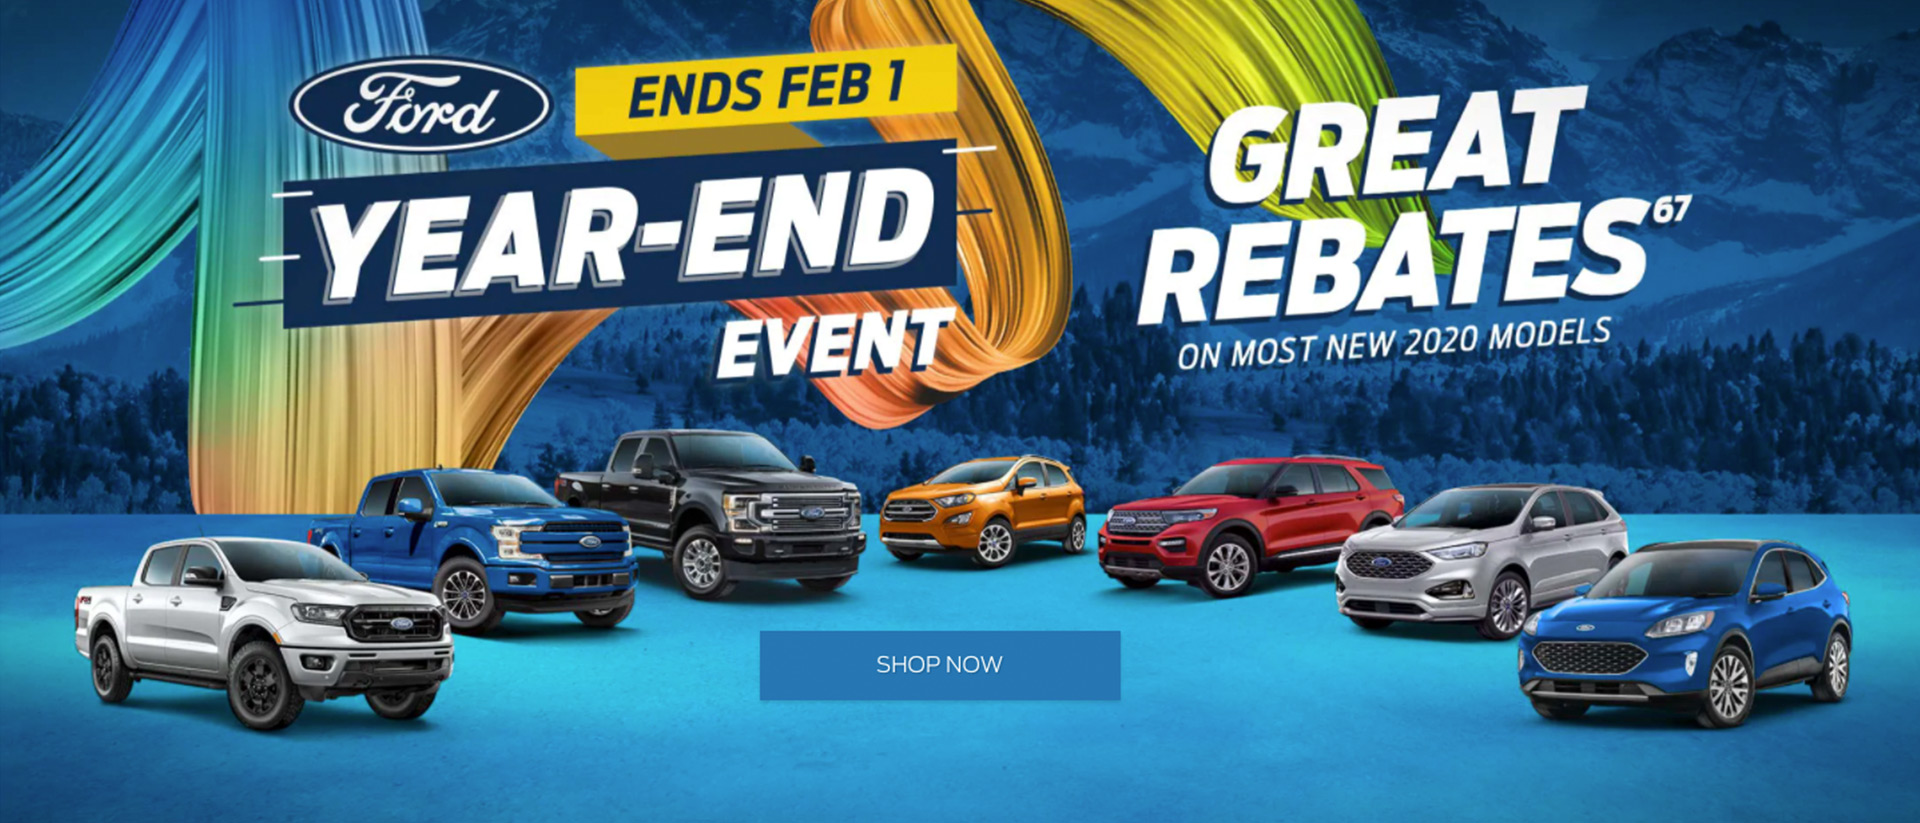 Ford January 2021 OEM Offer